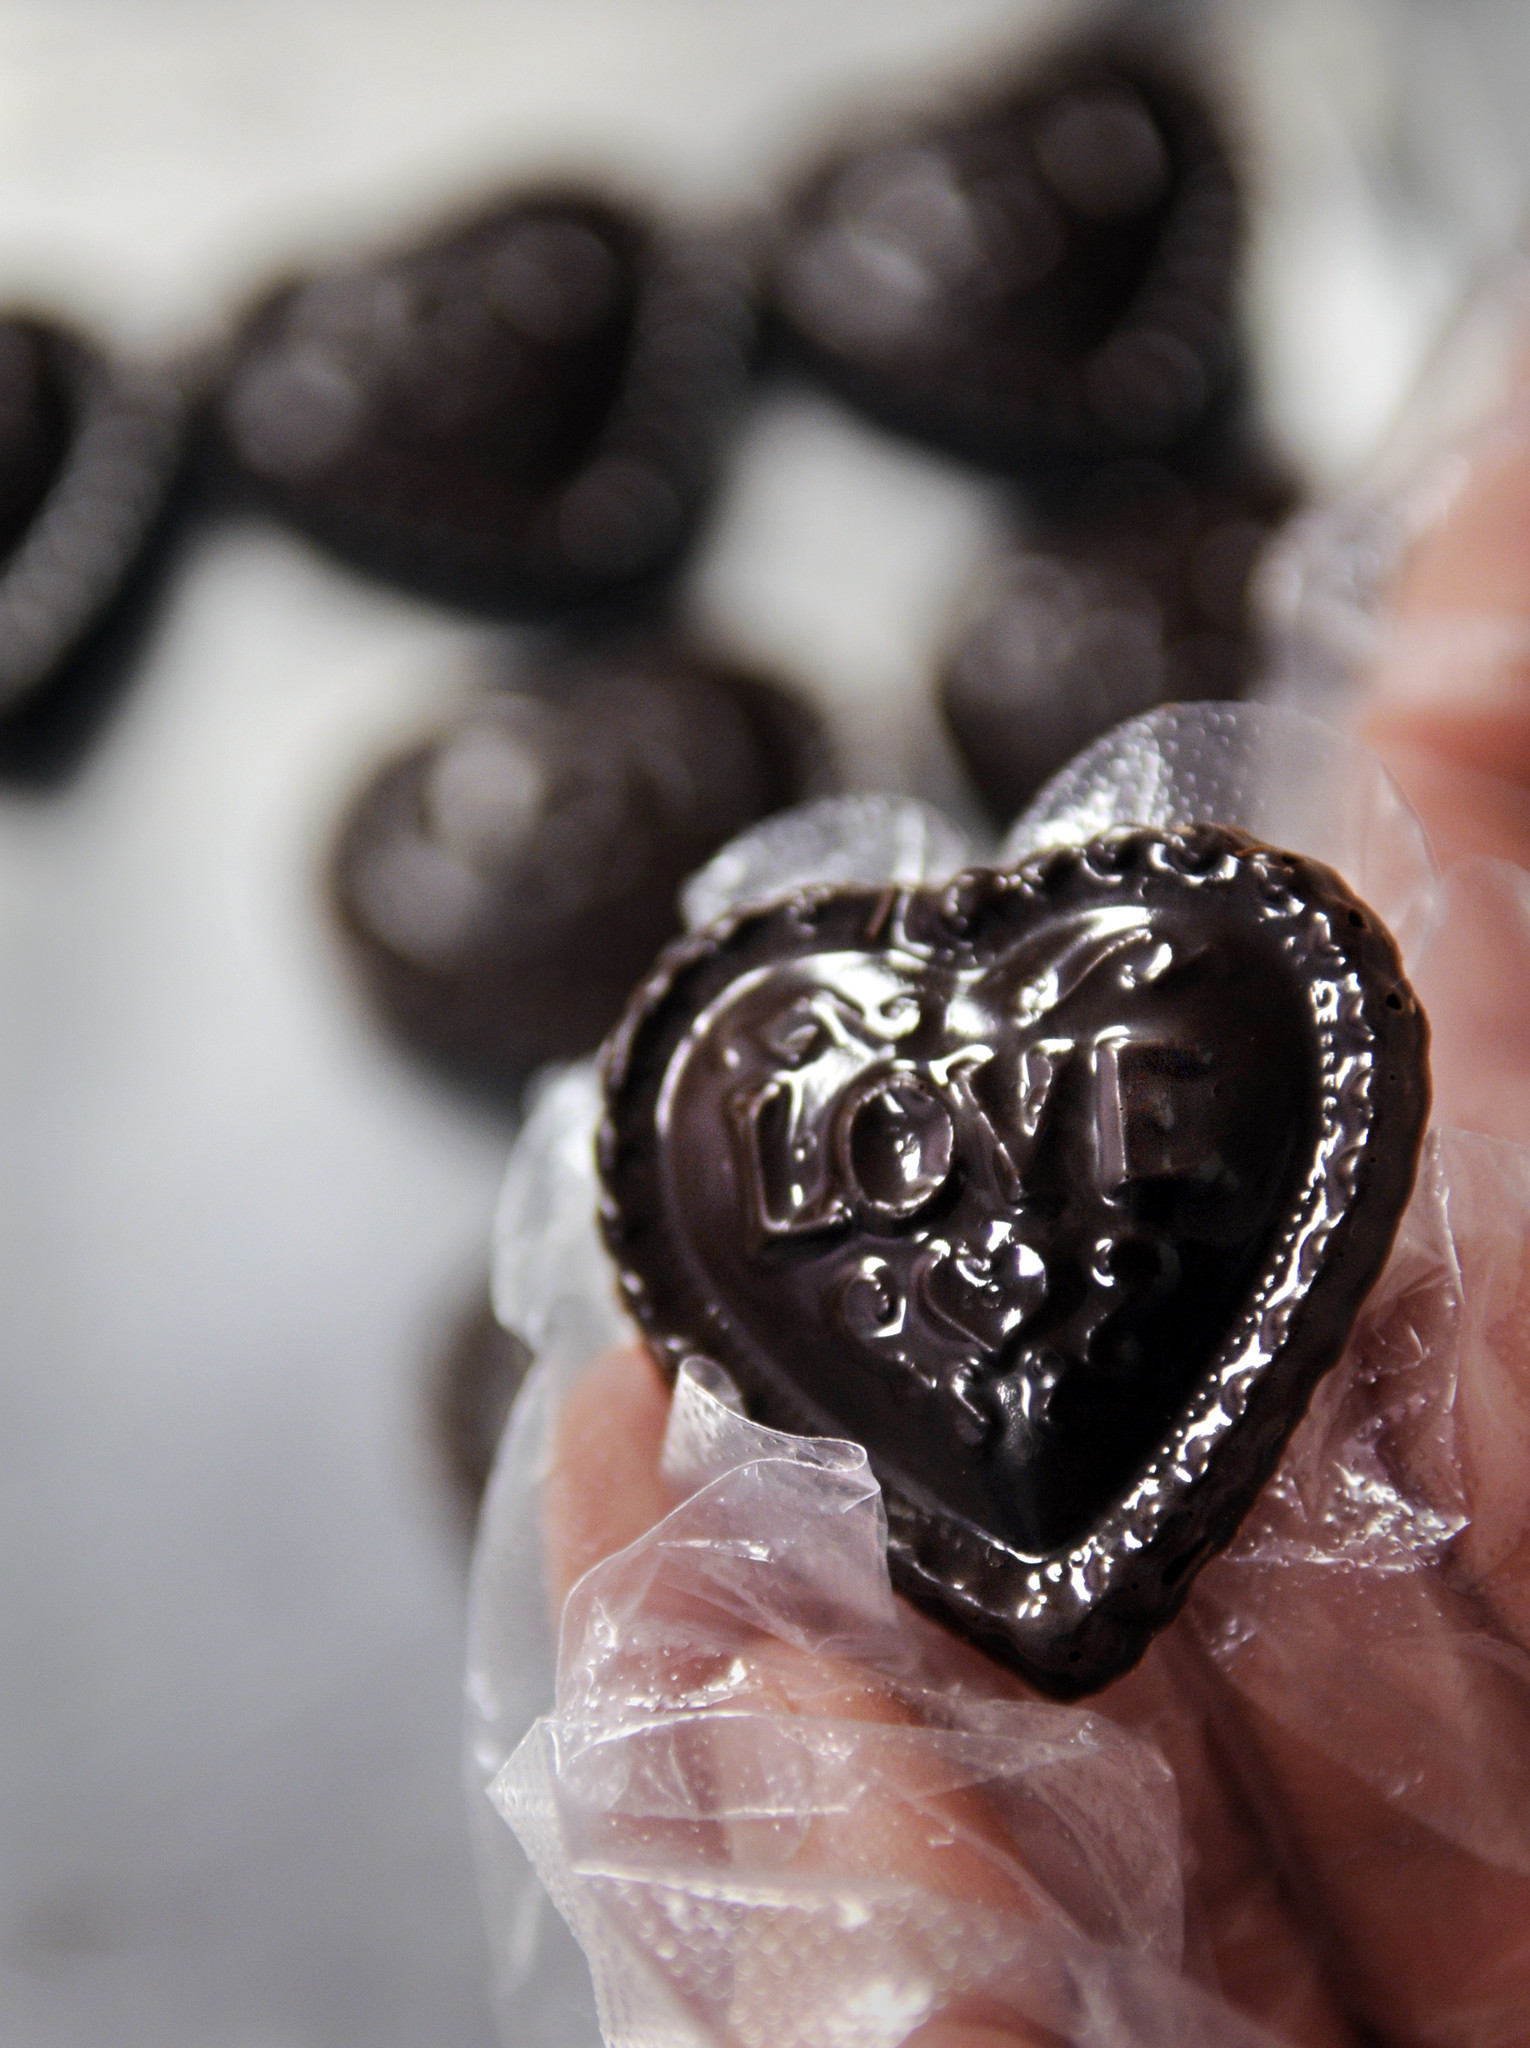 Tschudin Chocolates on Main Street in Middletown creates award-winning chocolates. In photo, some Valentine's Day-themed dark chocolate medallions are prepared for the big day.